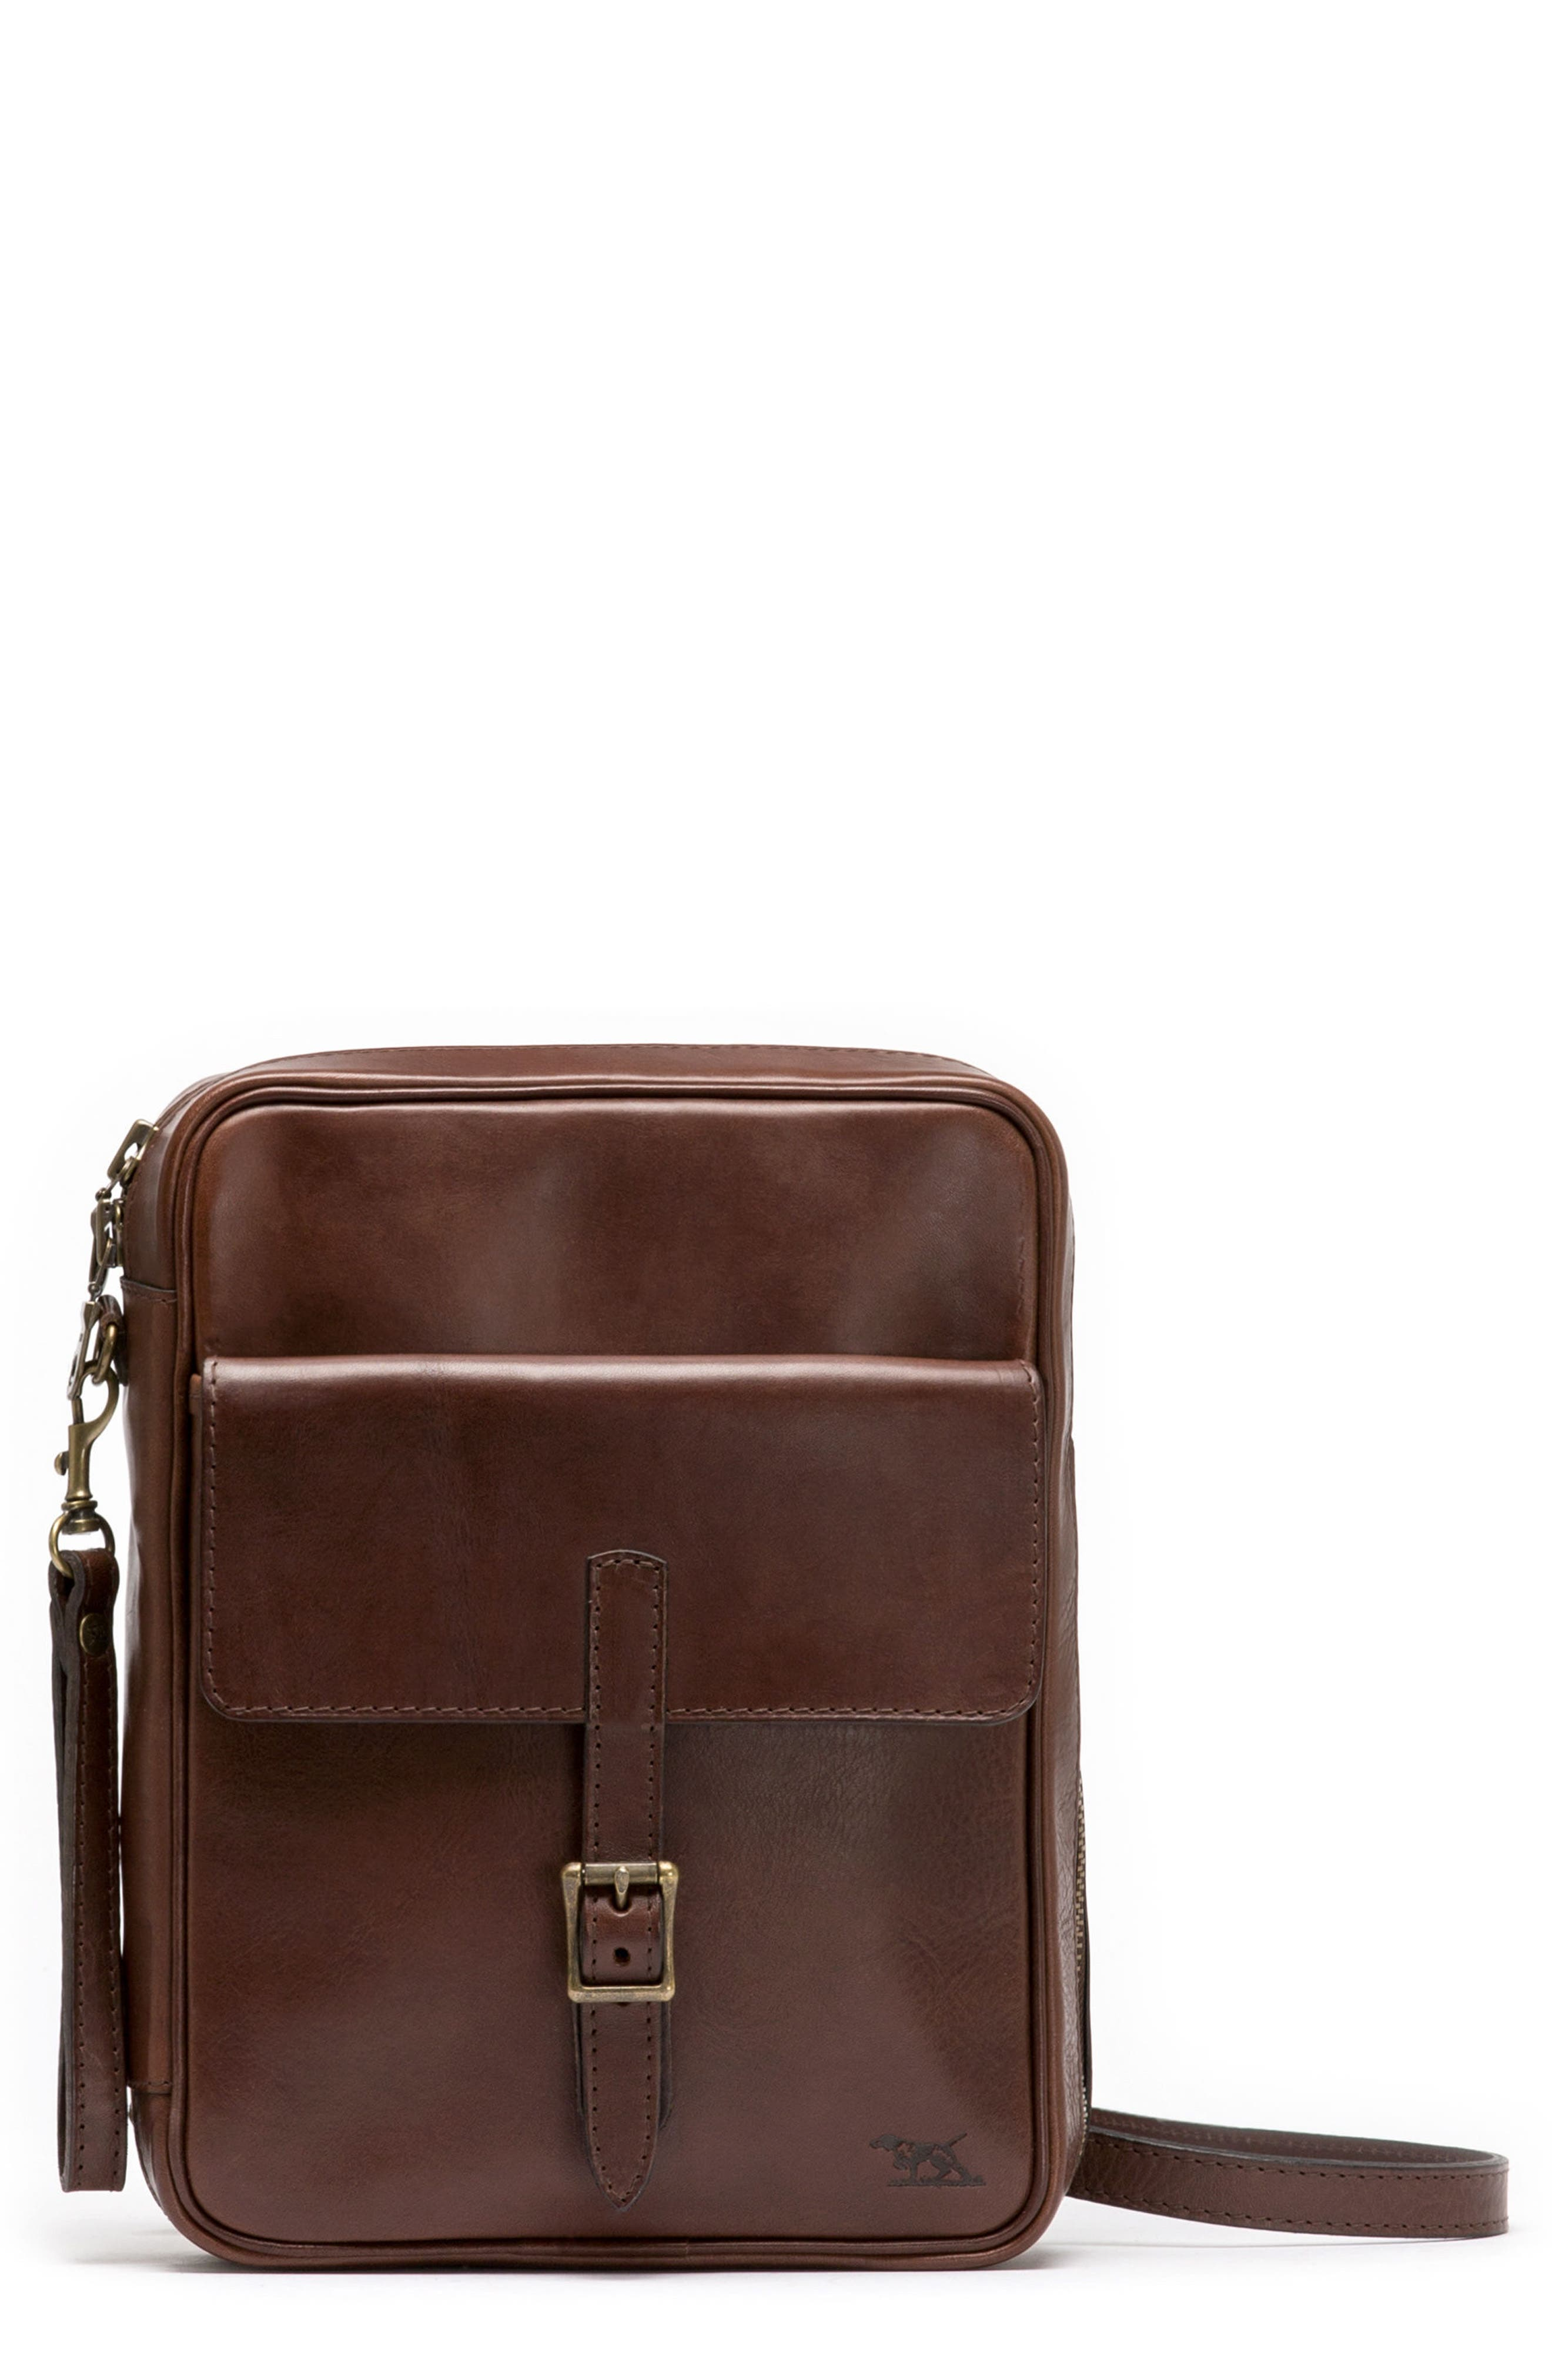 Alternate Image 1 Selected - Rodd & Gunn Cow Lane Crossbody Bag